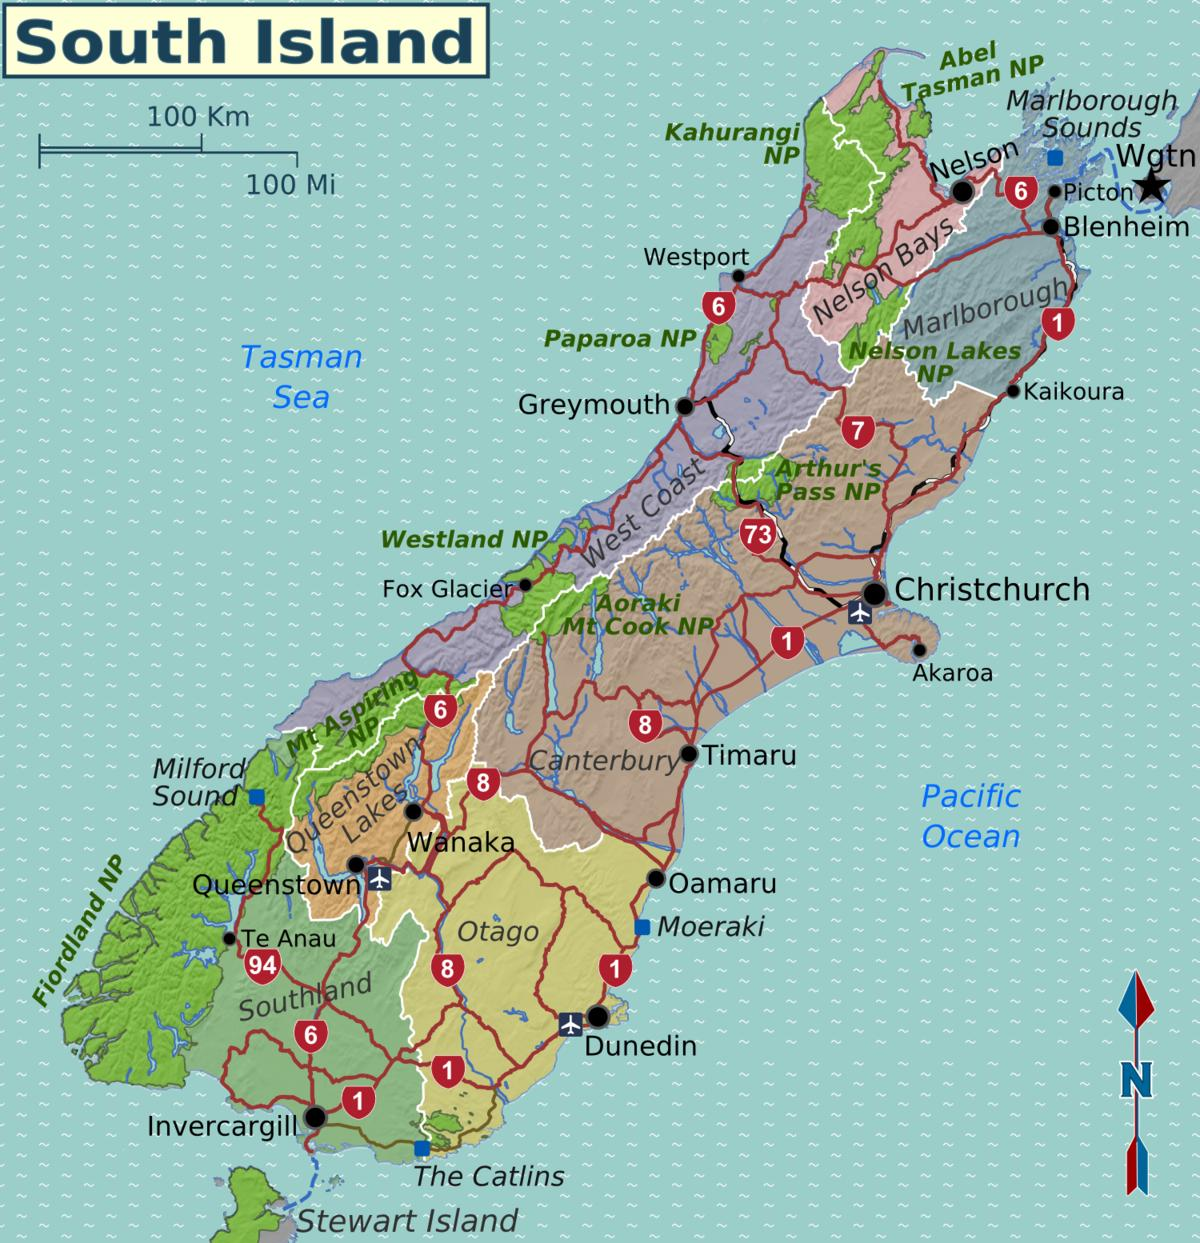 Map New Zealand Regions.Map Of South Island New Zealand Regions Map Of South Island New